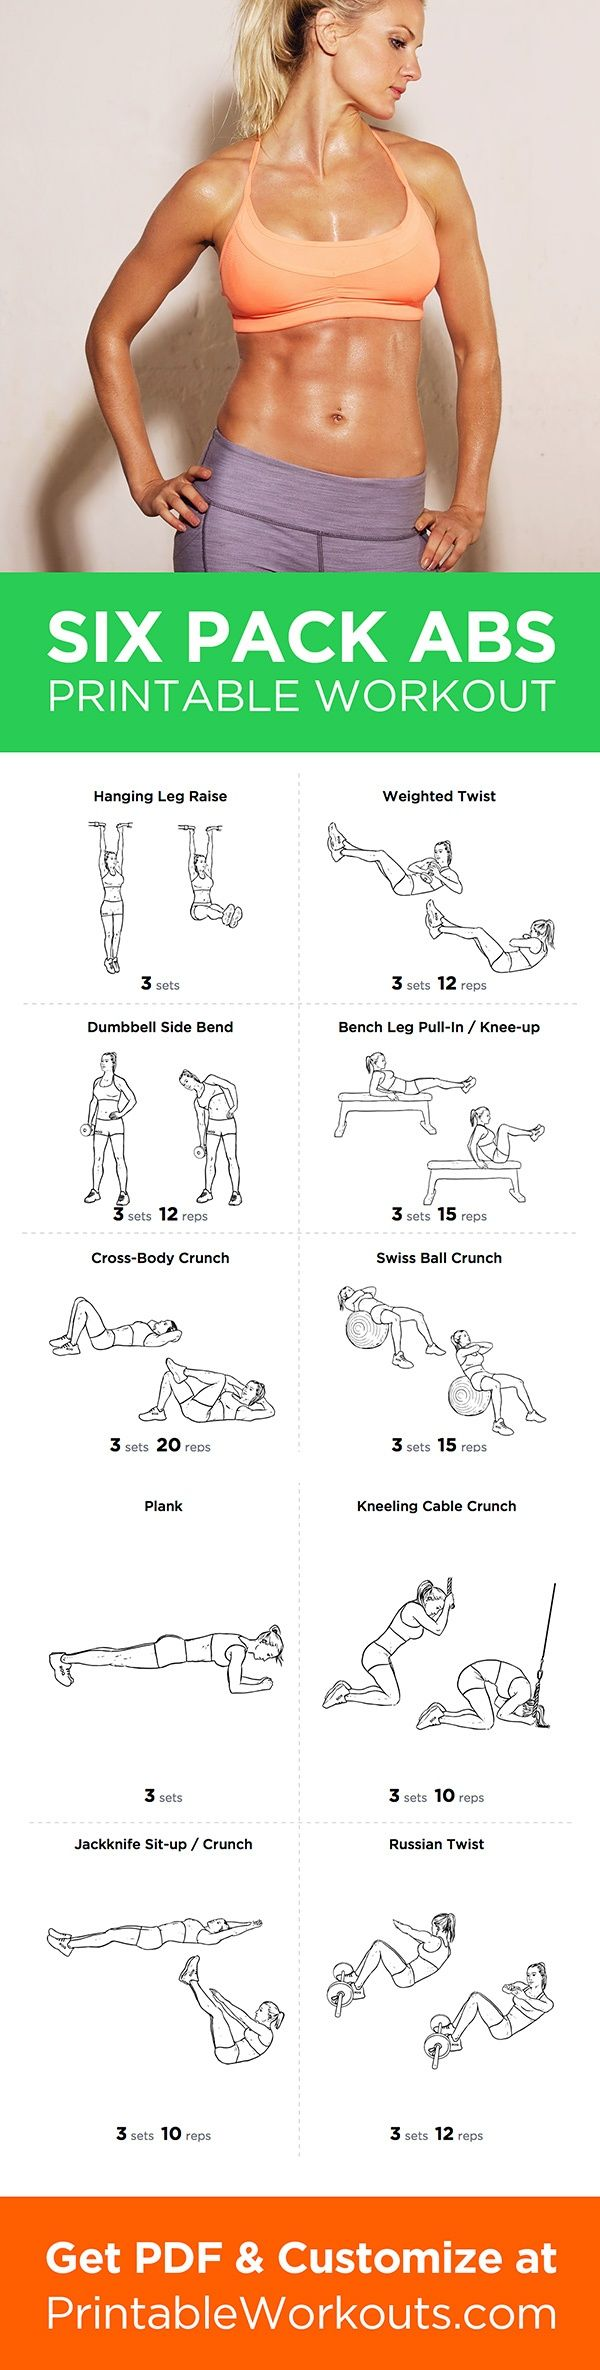 Intrepid image in printable ab workout